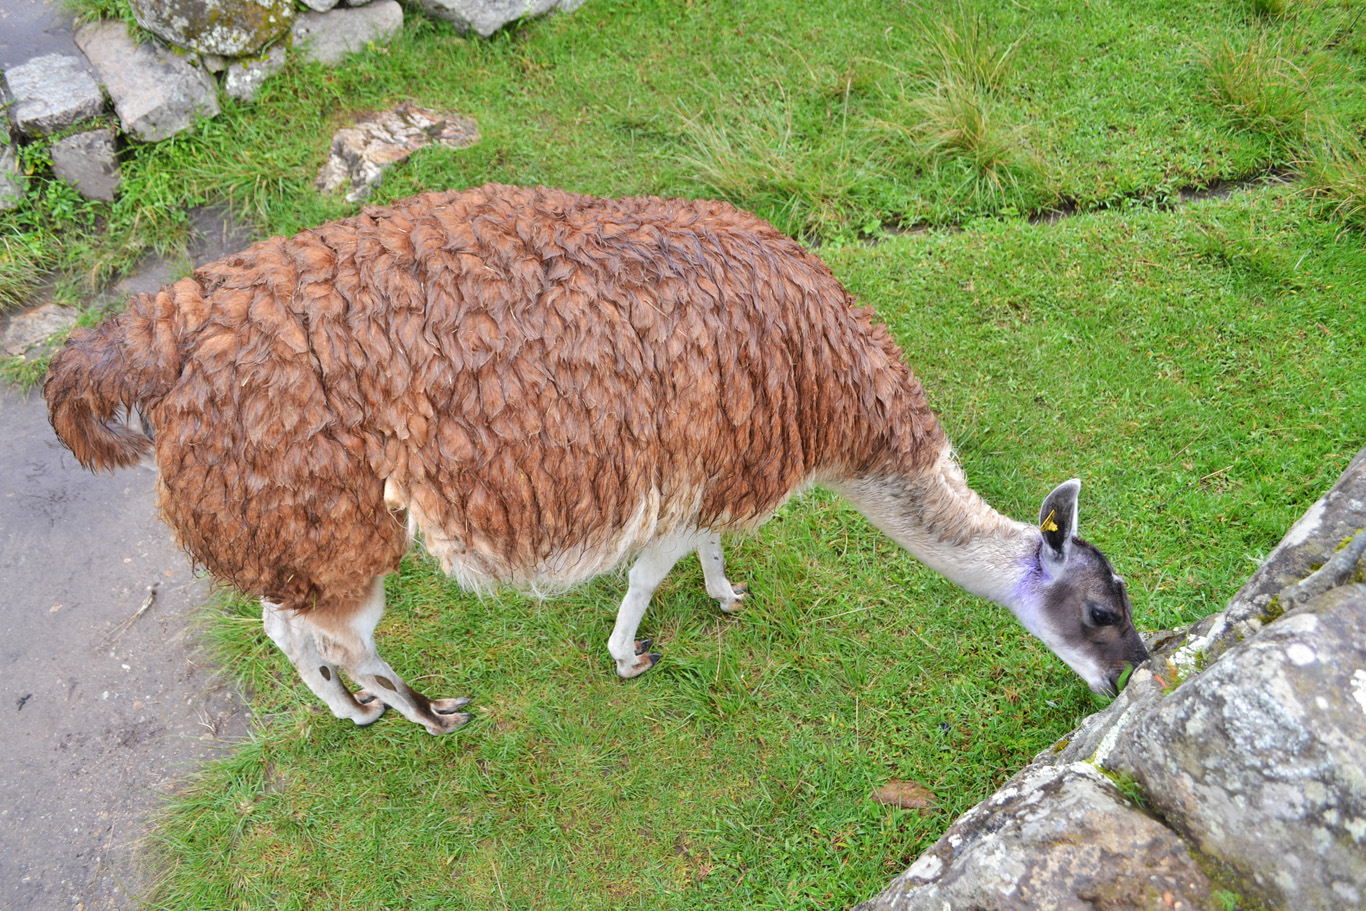 Lama grazing at Machu Picchu